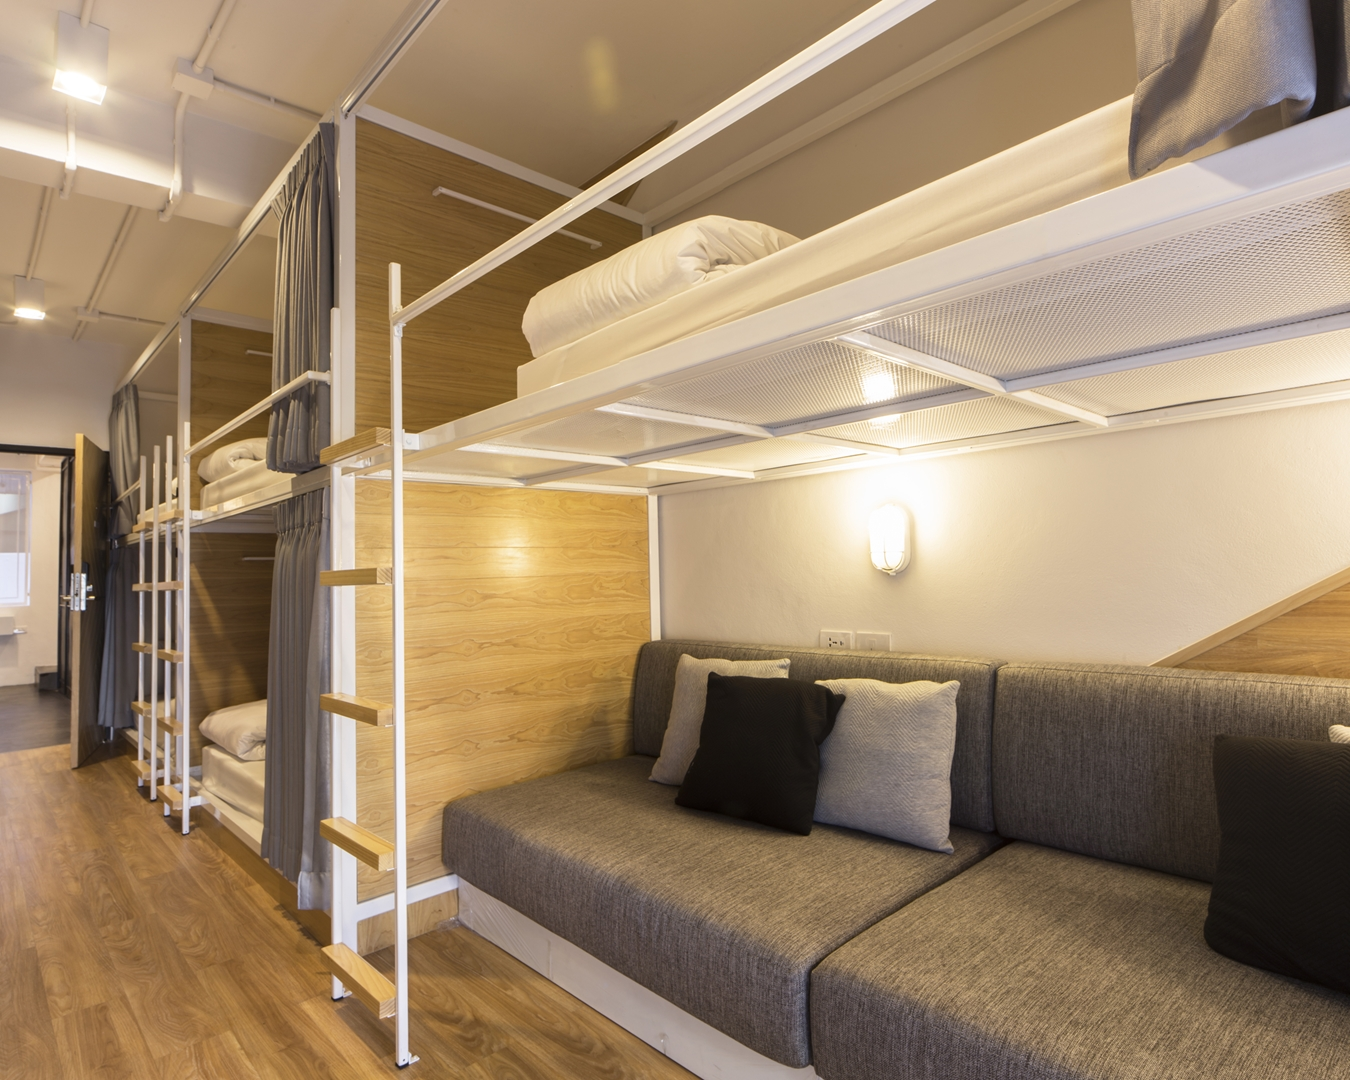 BED_ONE_BLOCK_45 (Copy)